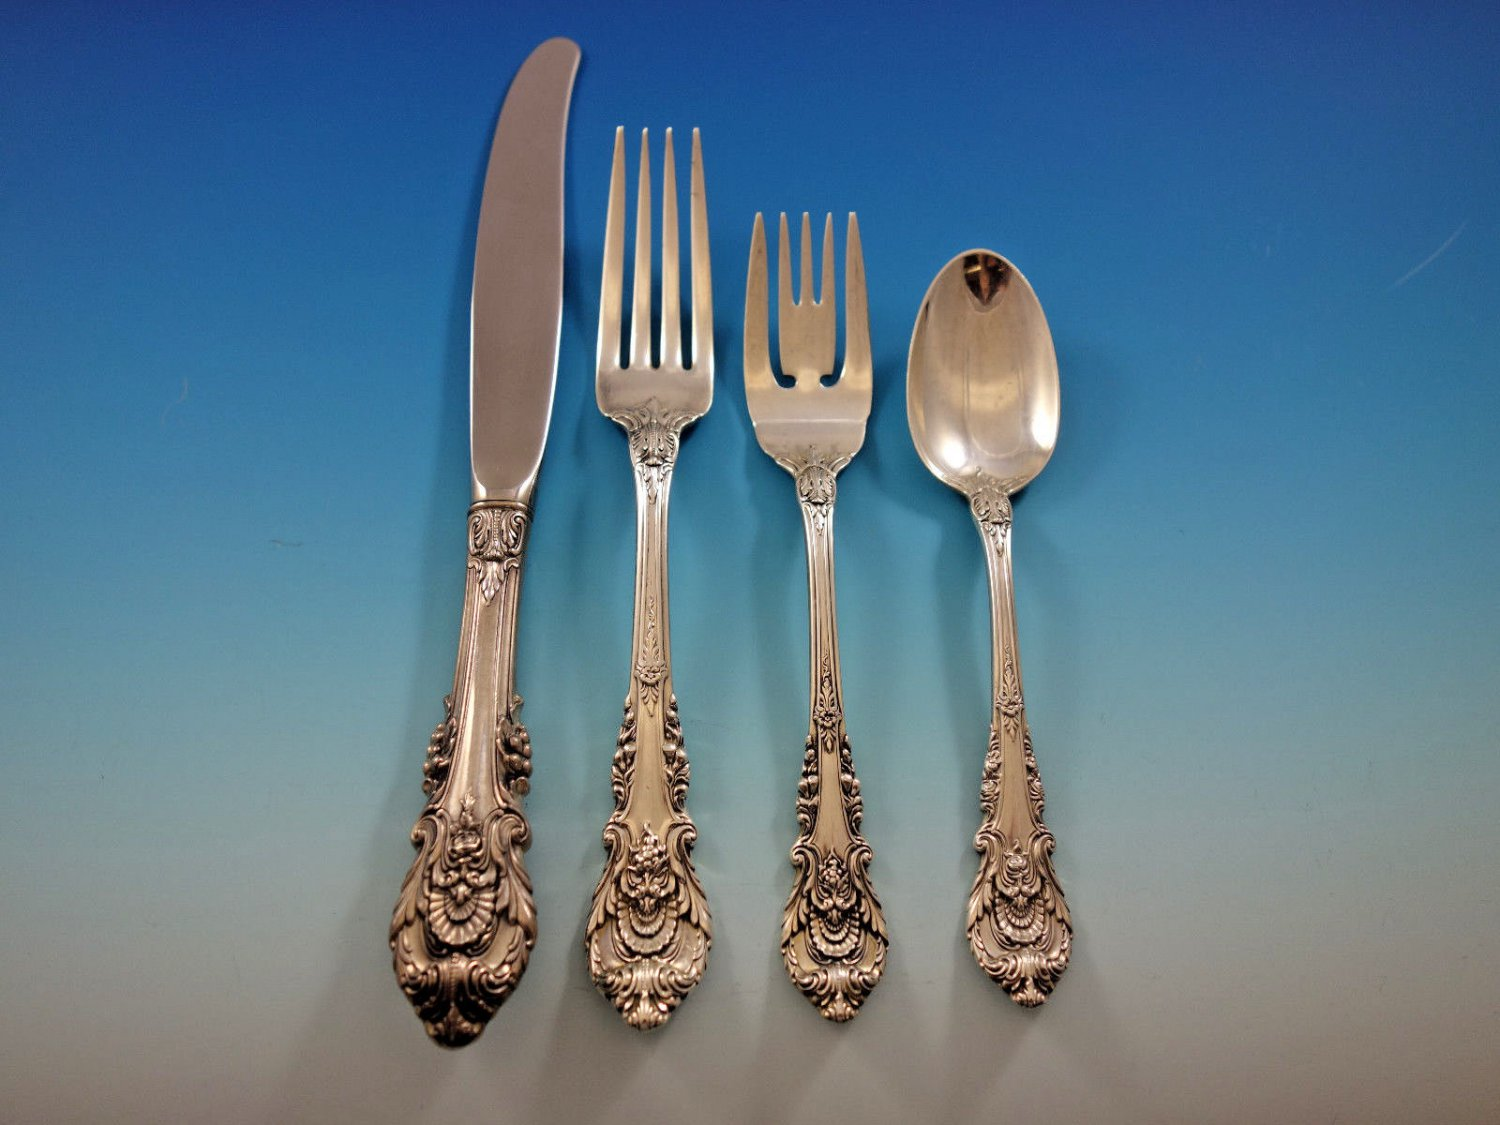 Sir Christopher by Wallace Sterling Silver Flatware Set for 8 Service 40 Pieces